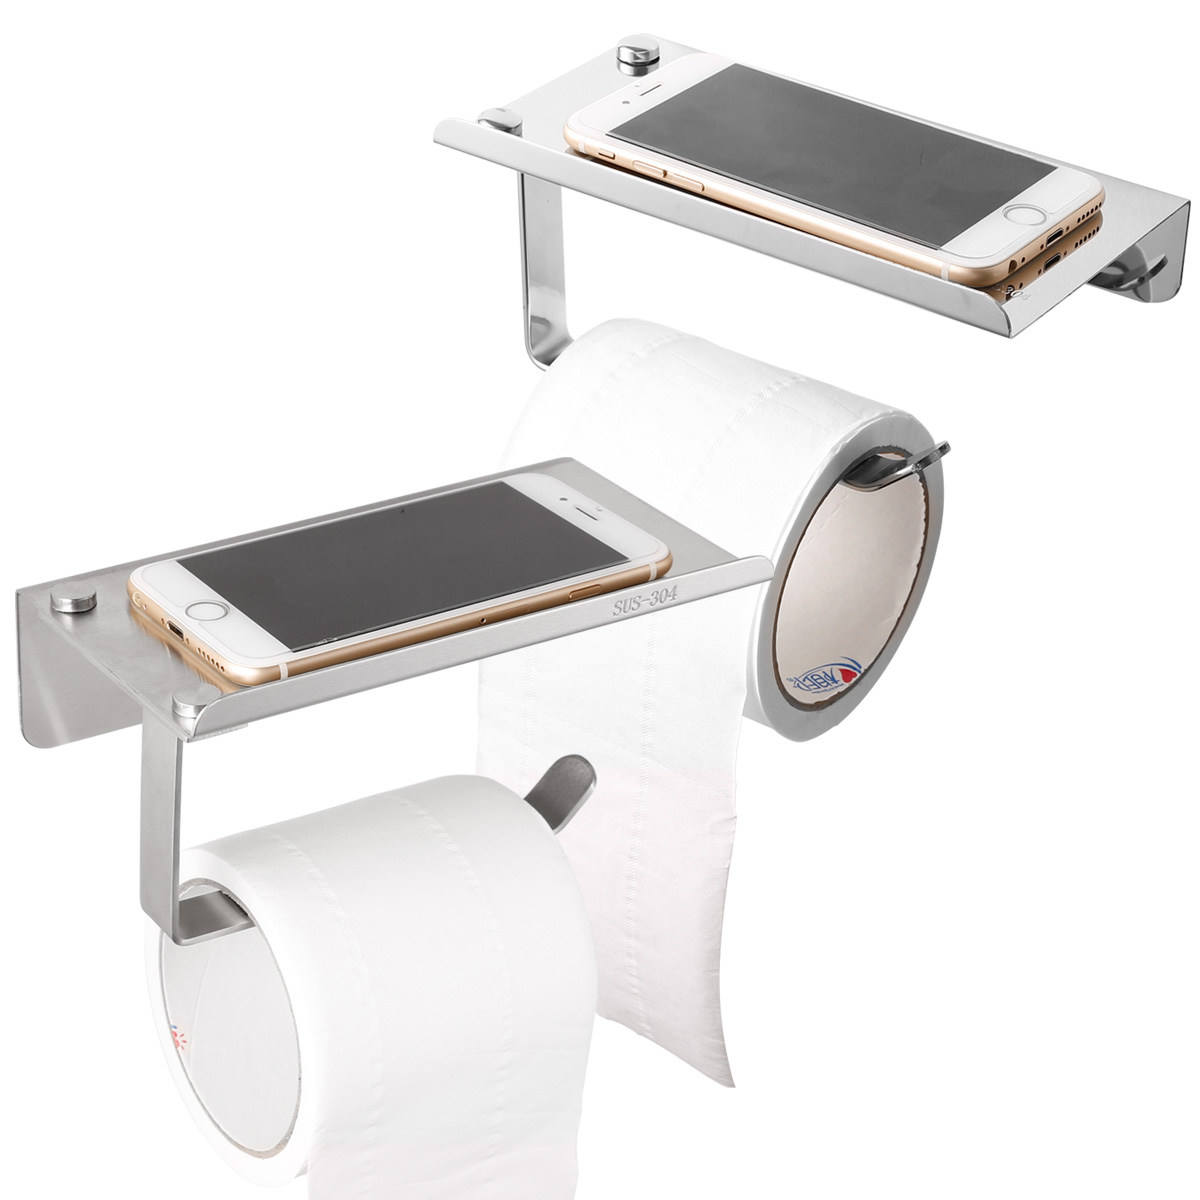 Stainless Steel Wall Mounted Bathroom Toilet Paper Holder